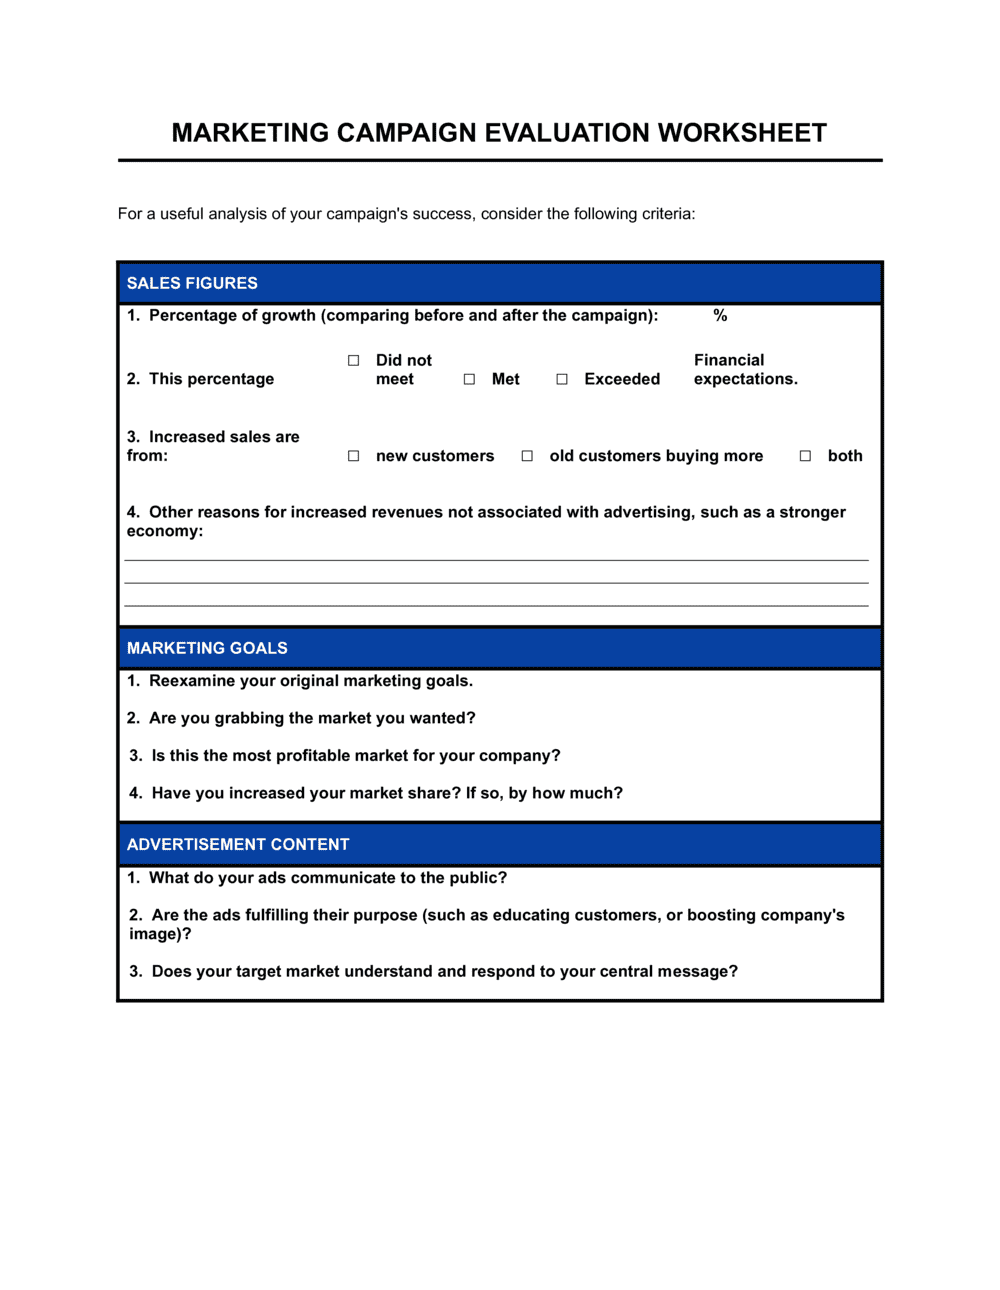 Business-in-a-Box's Marketing Campaign Evaluation Template